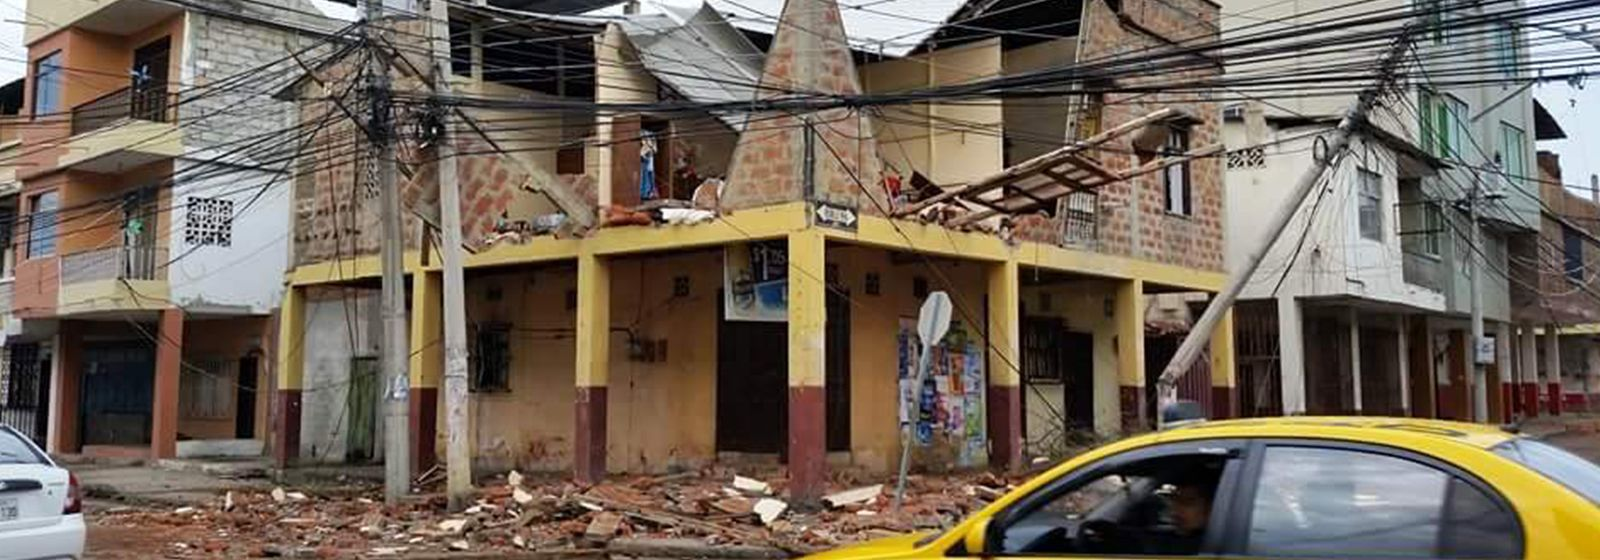 When earthquake hit Ecuador, she stepped up